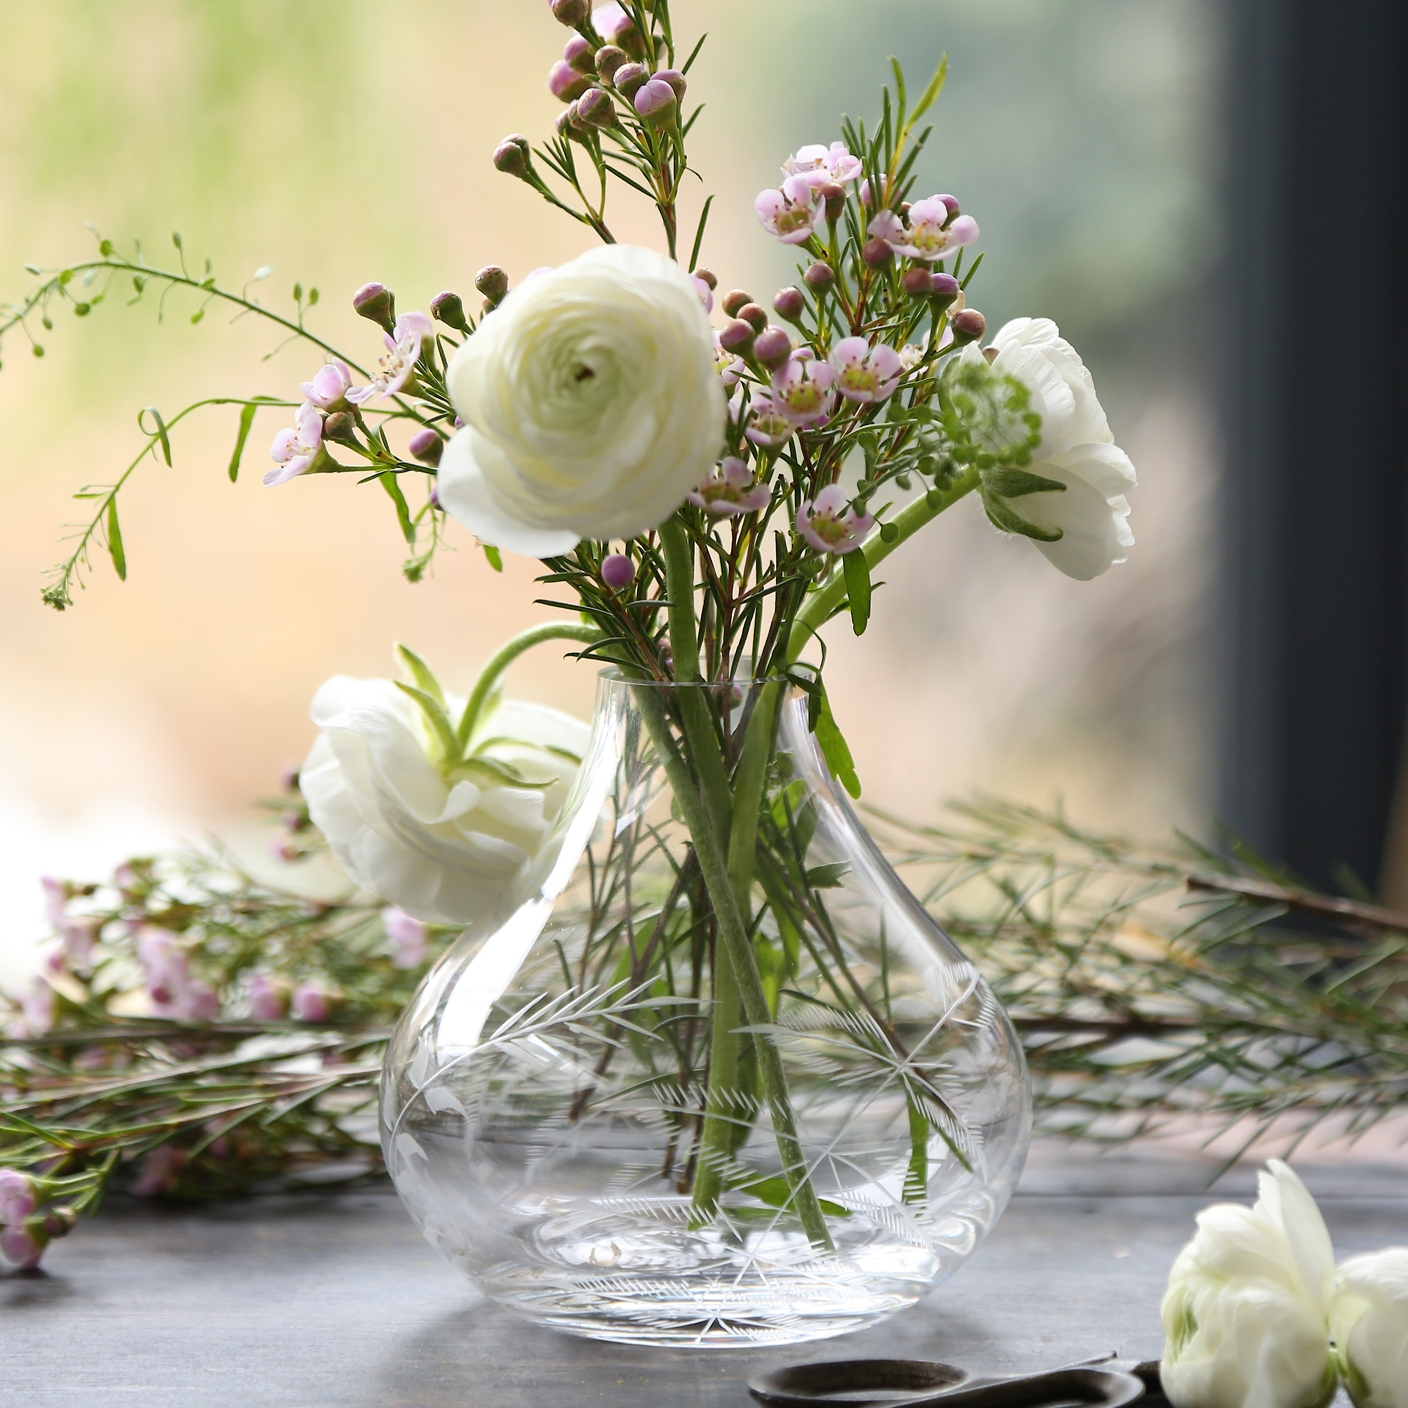 VASES   Small tear drop vases, perfect for short stems.